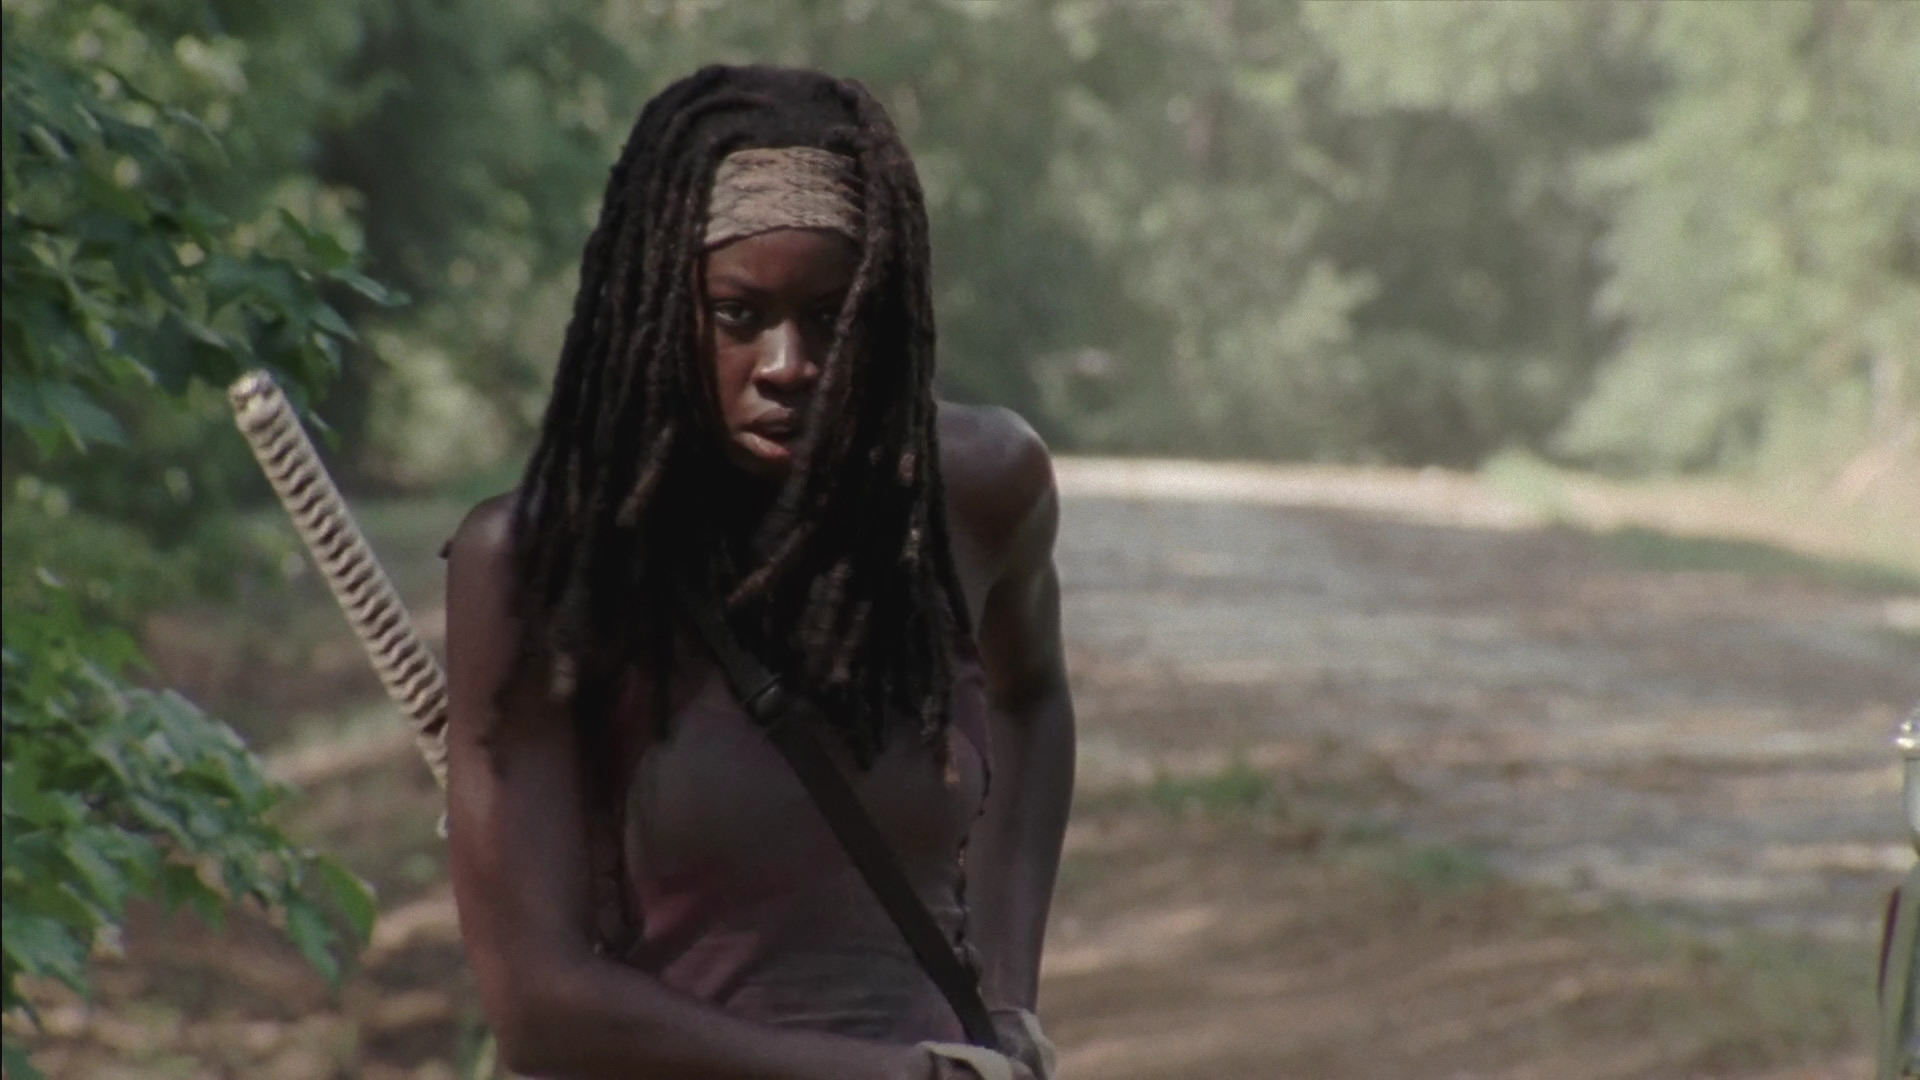 'The Walking Dead' Season 3 Episode 7 Captures